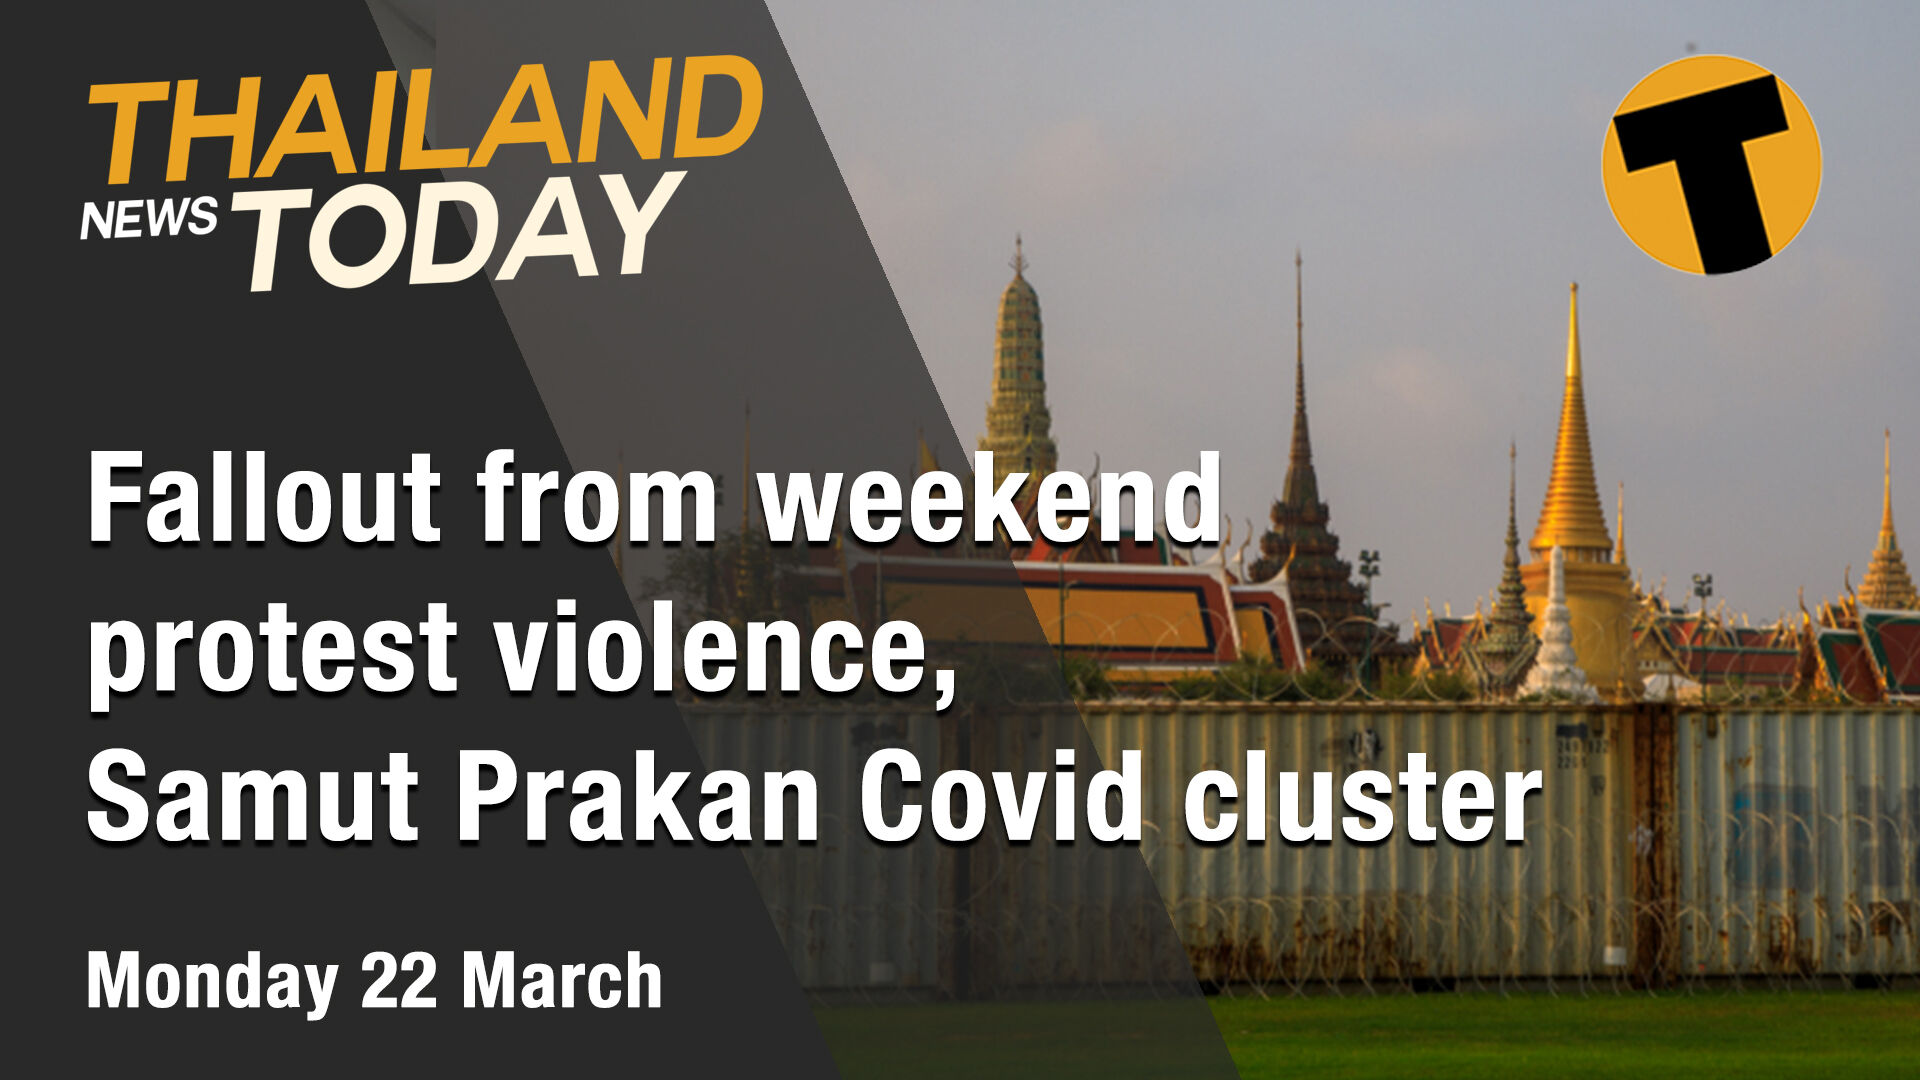 Thailand News Today | Fallout from weekend protest violence, Samut Prakan Covid cluster | March 22 | Thaiger